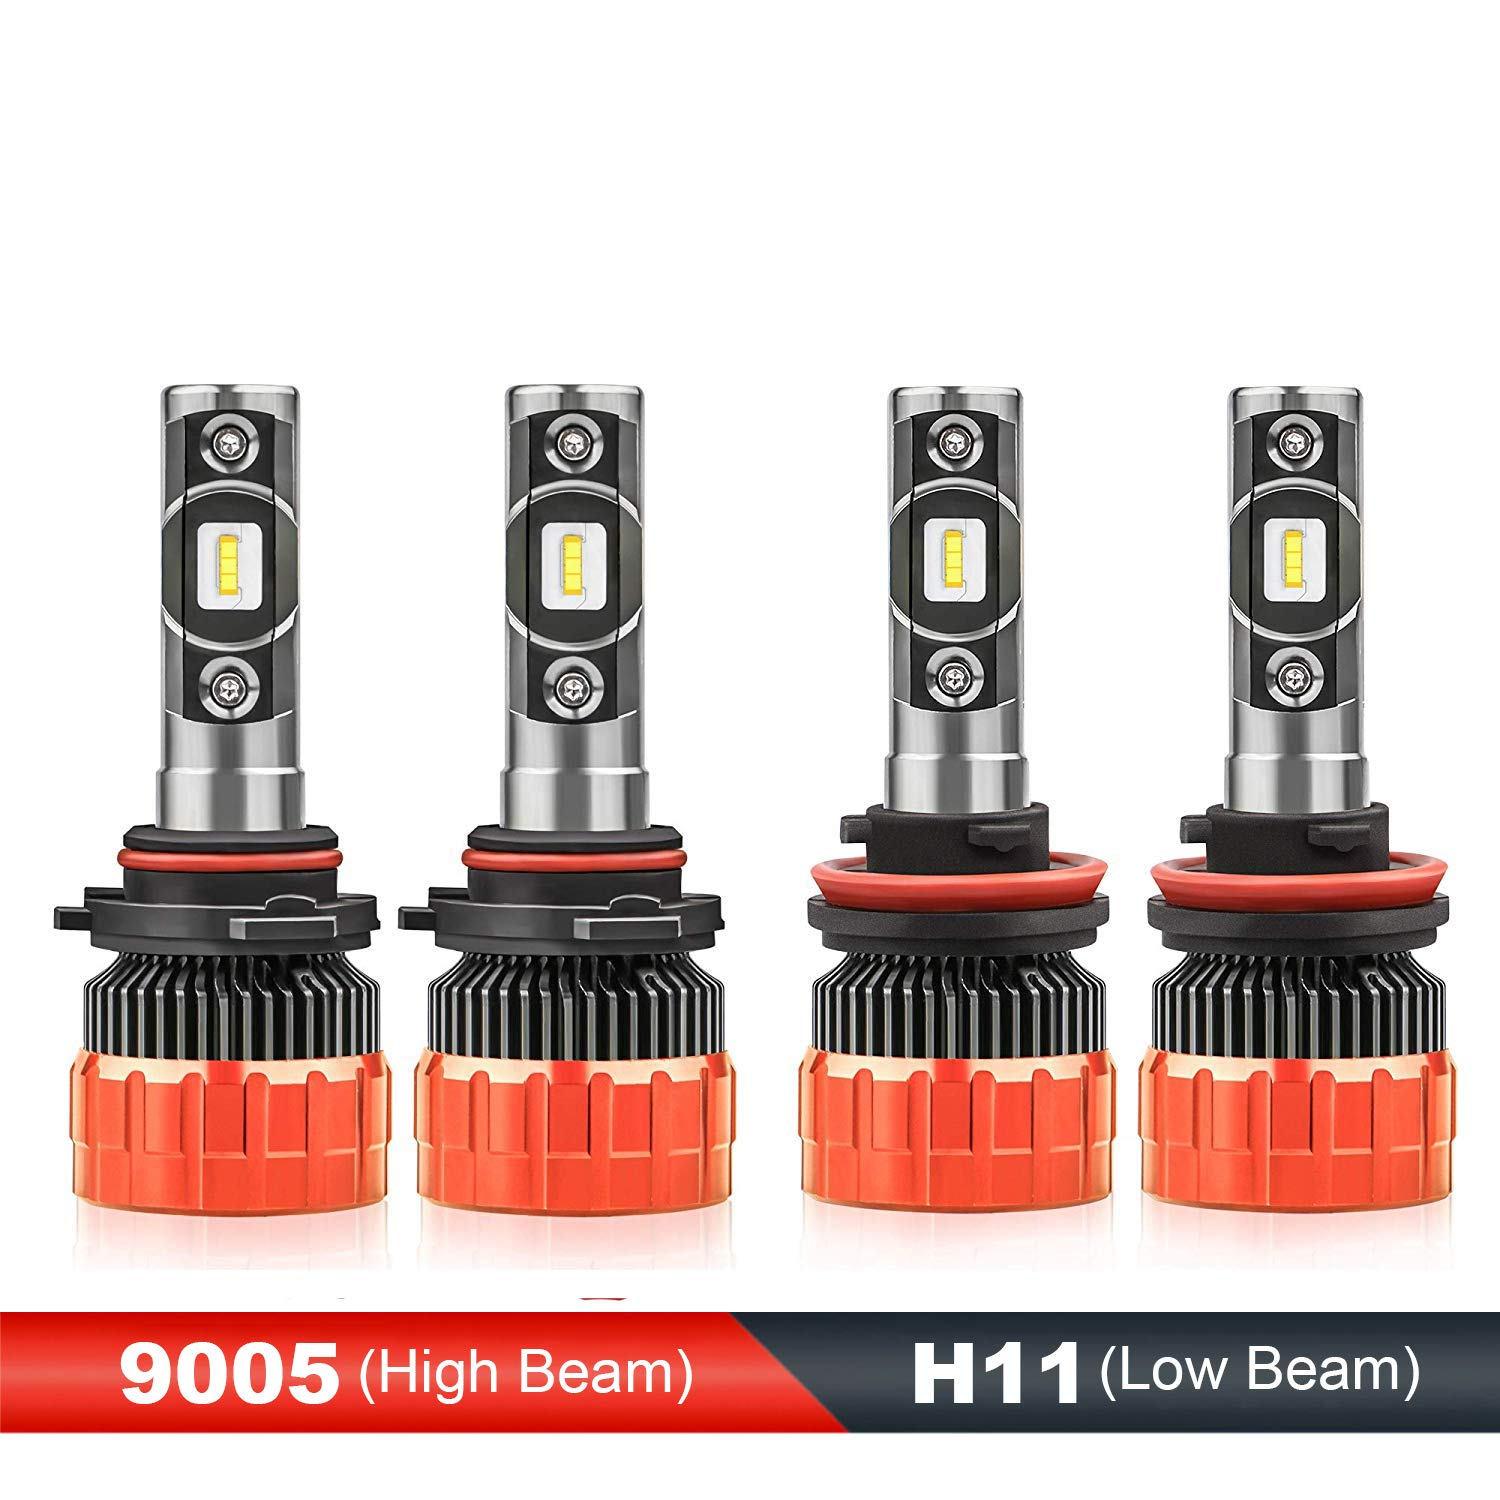 MOSTPLUS 8000 Lumens 80W/Pair-9005+H11 All-in-One LED-TX1860 Chip Really Focused Headlight Bulbs Super Mini Conversion Kit Xenon White